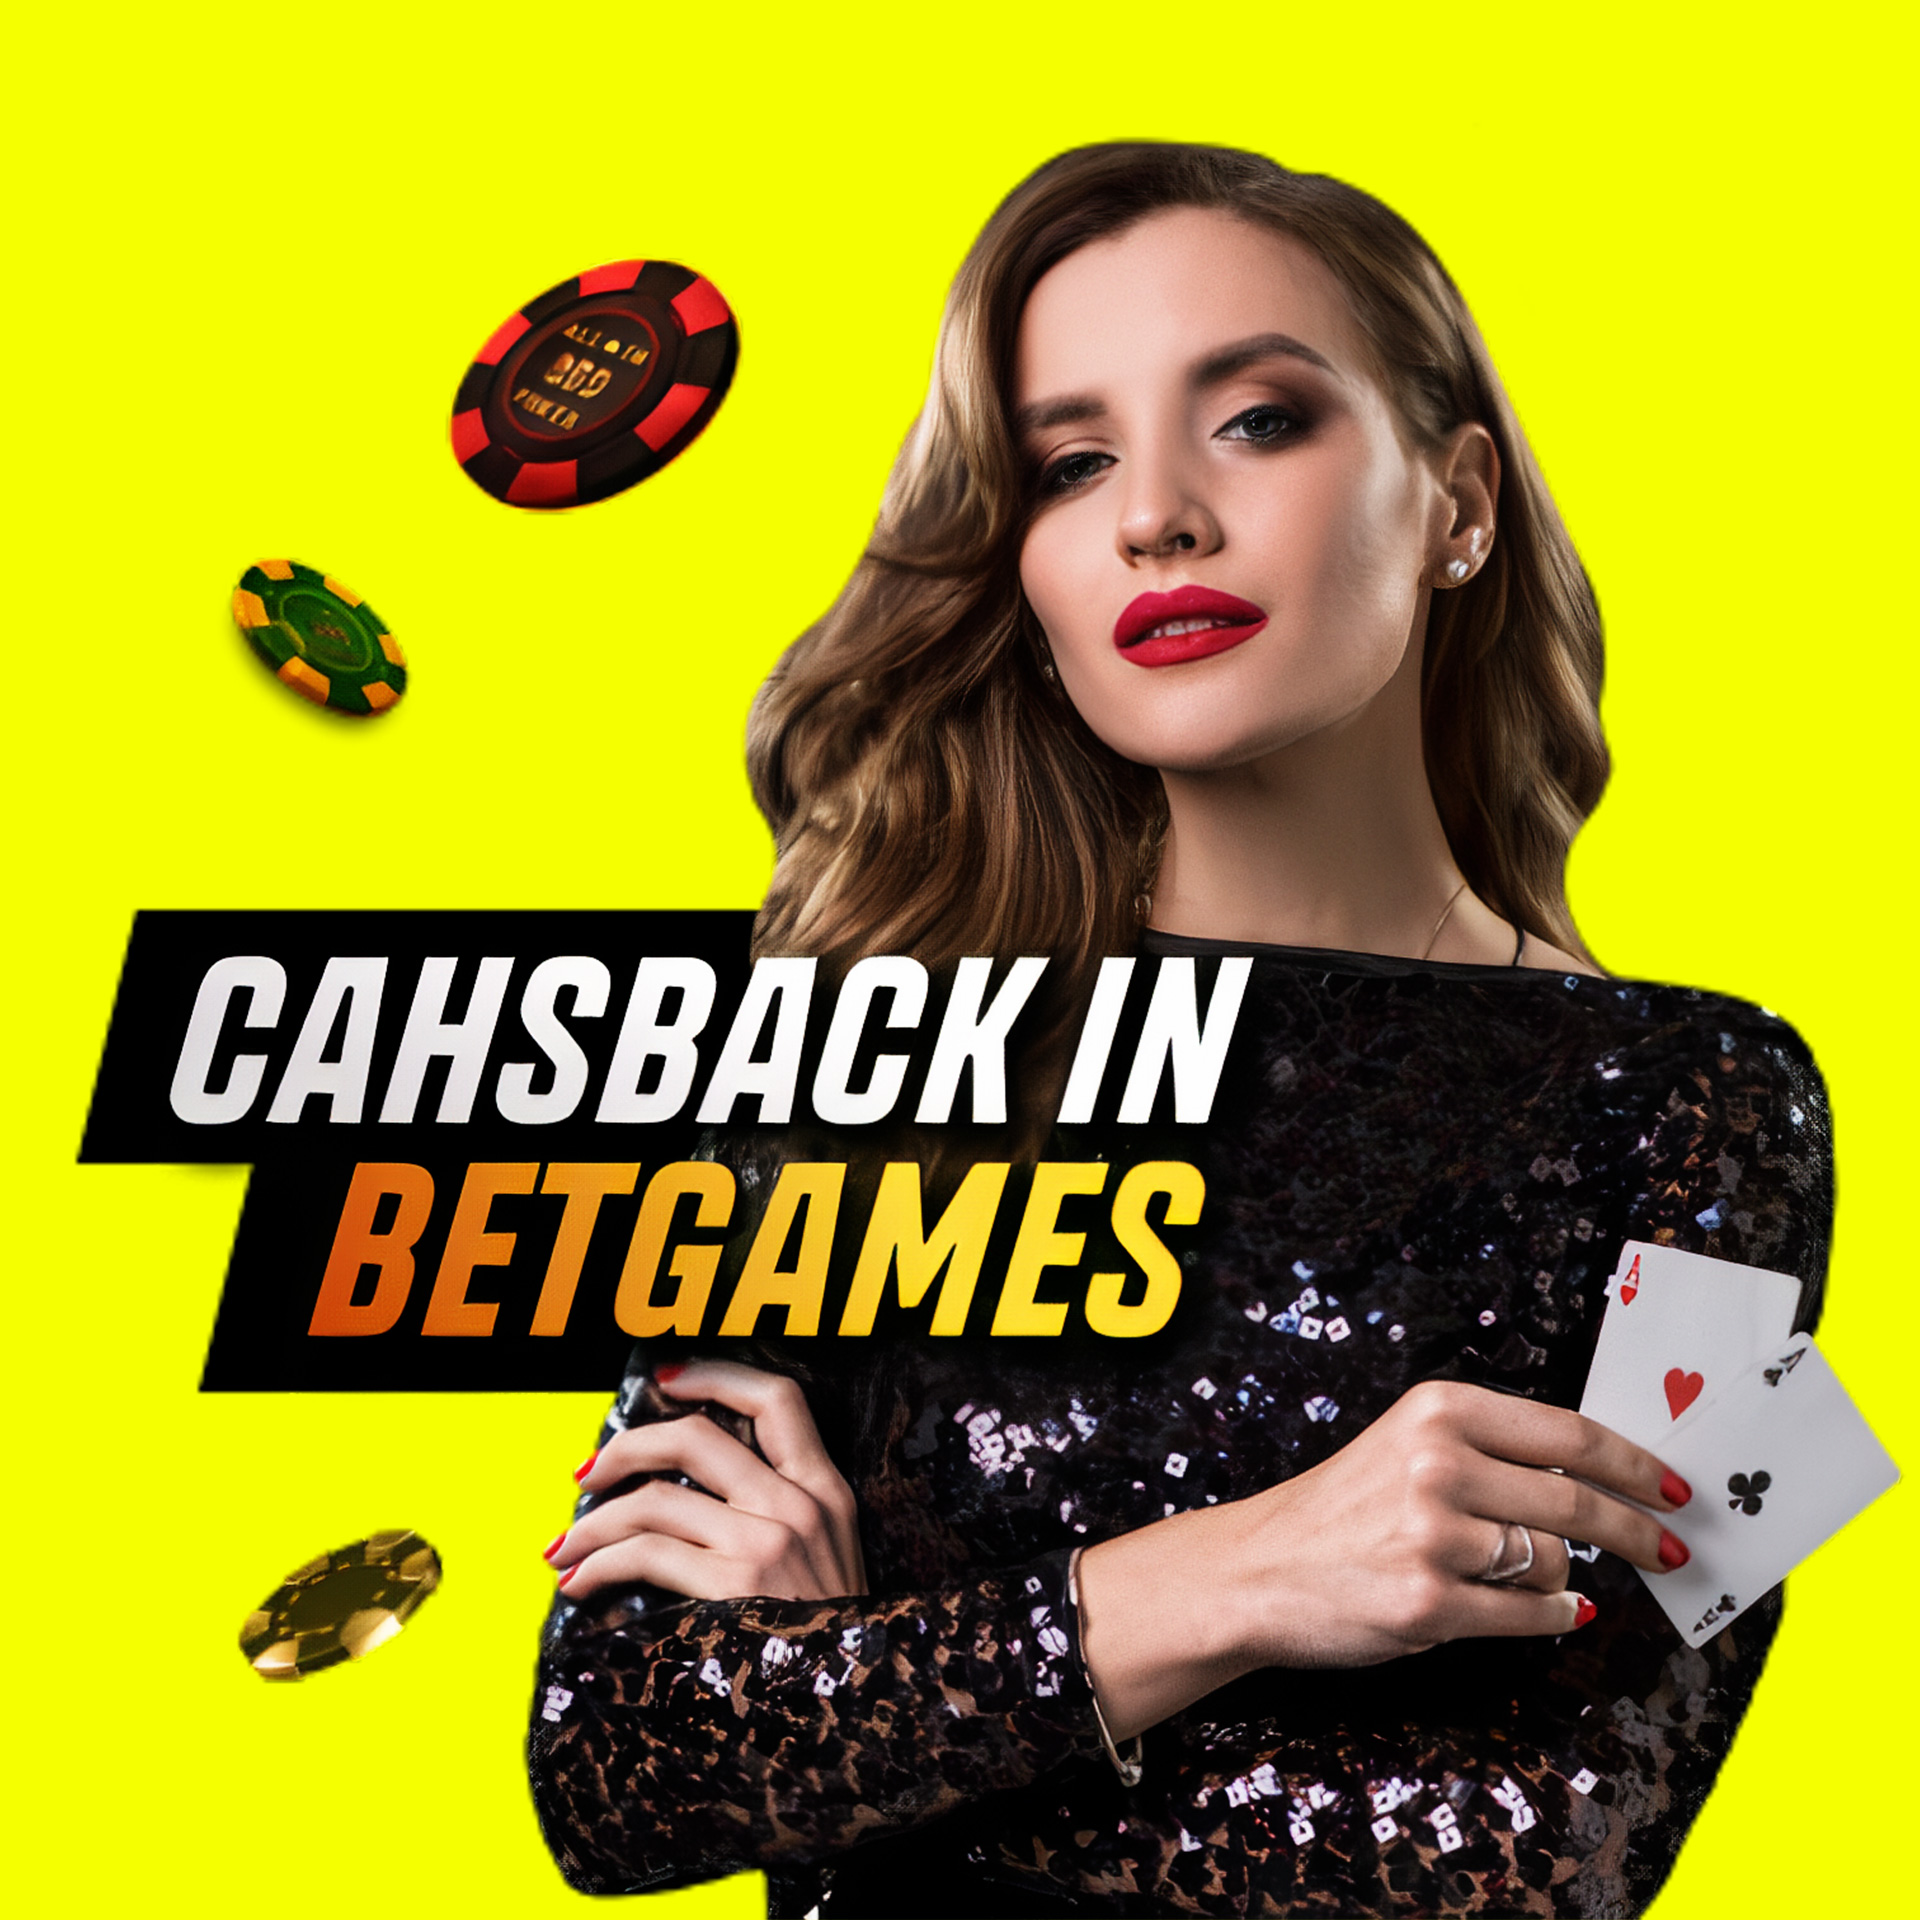 The more money you spend on betting or gamblin, the bigger cashback you'll get from Parimatch.